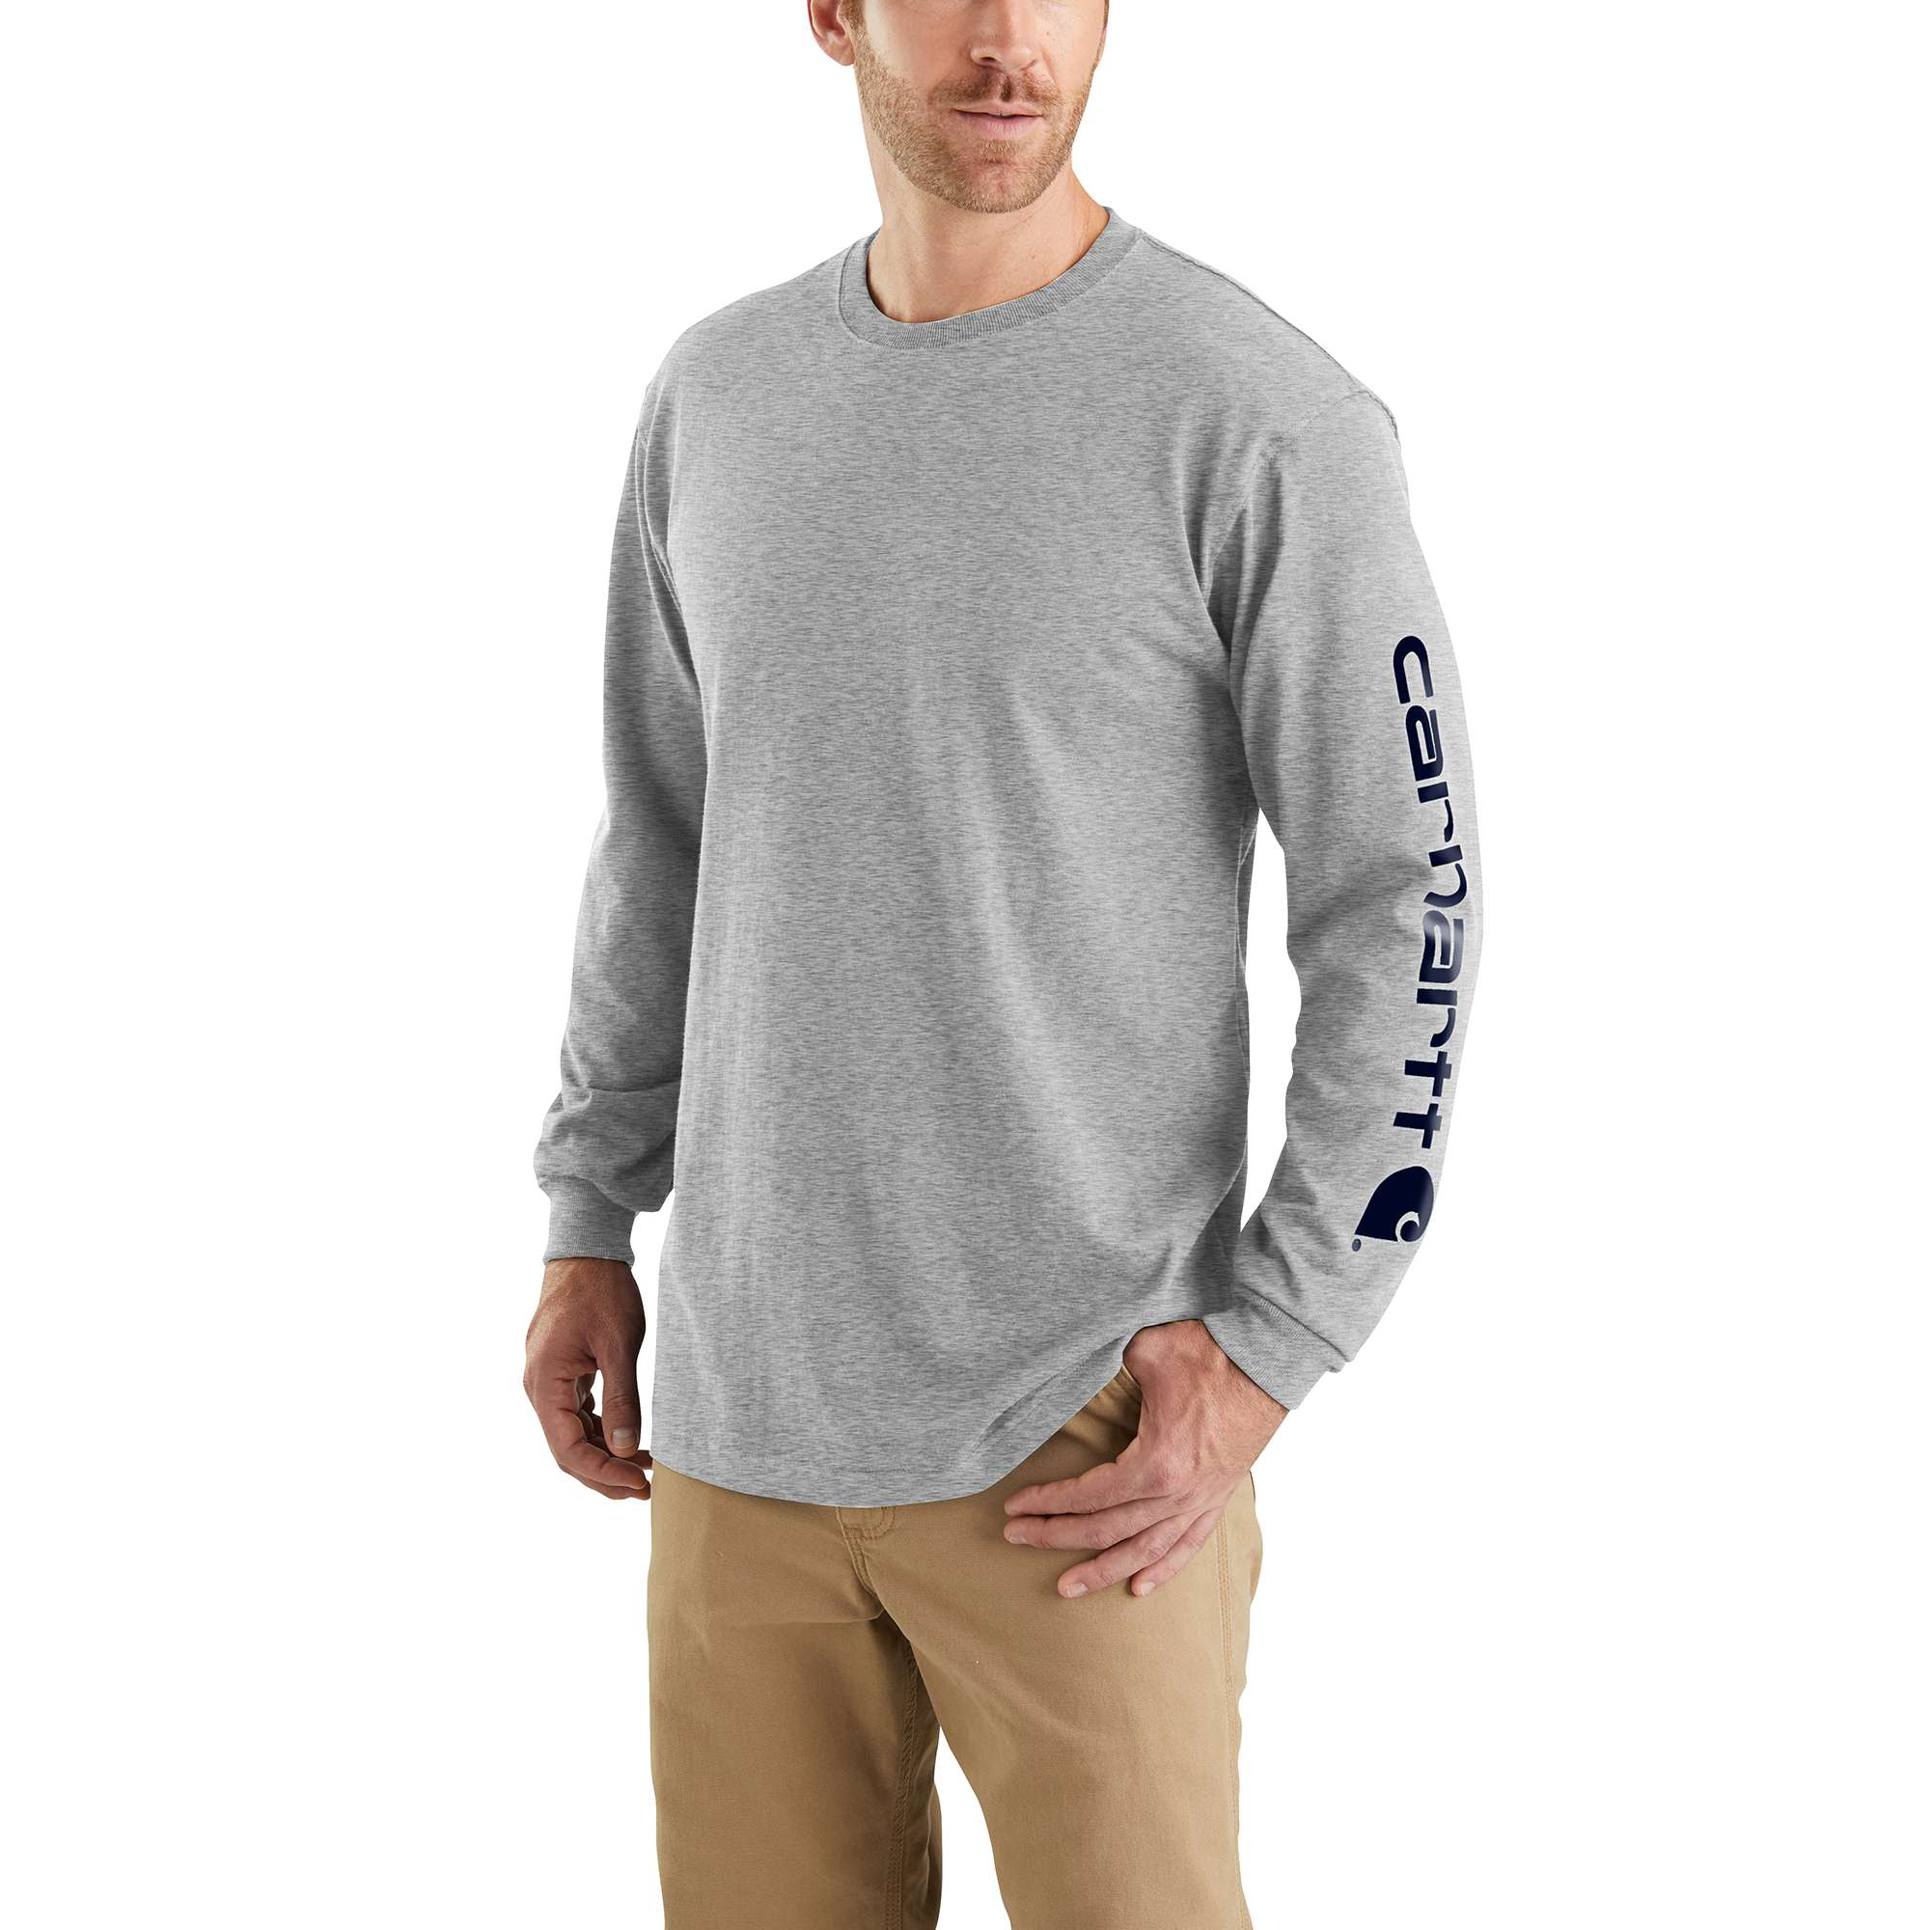 Men's  Long Sleeve Signature Logo Tall Tee, Heather Gray, swatch